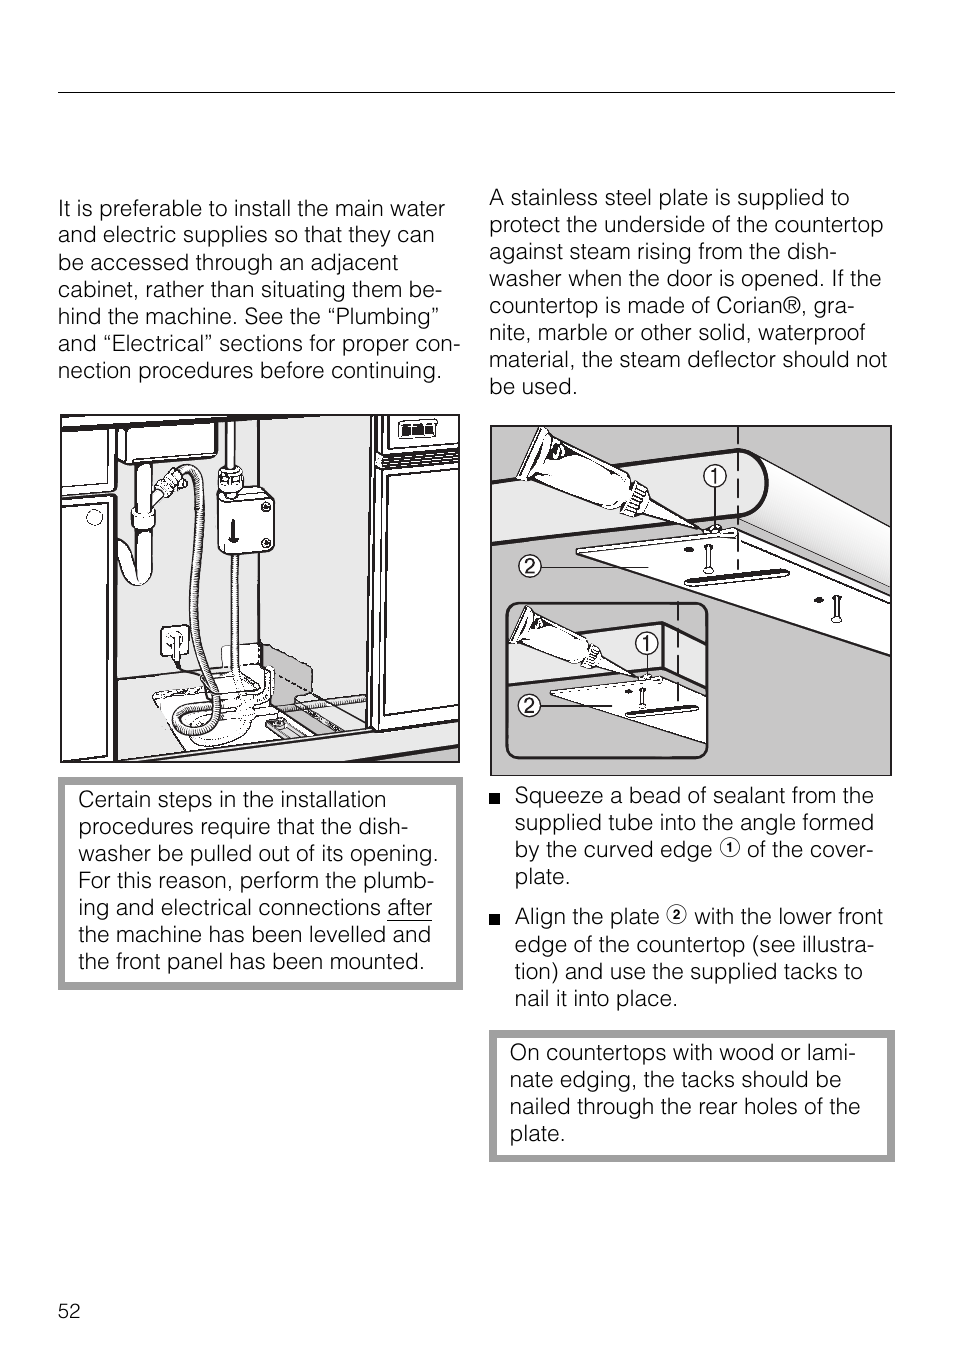 installing the dishwasher under the countertop 52 installing the rh manualsdir com miele dishwasher g1220sc service manual miele dishwasher g1220sc service manual